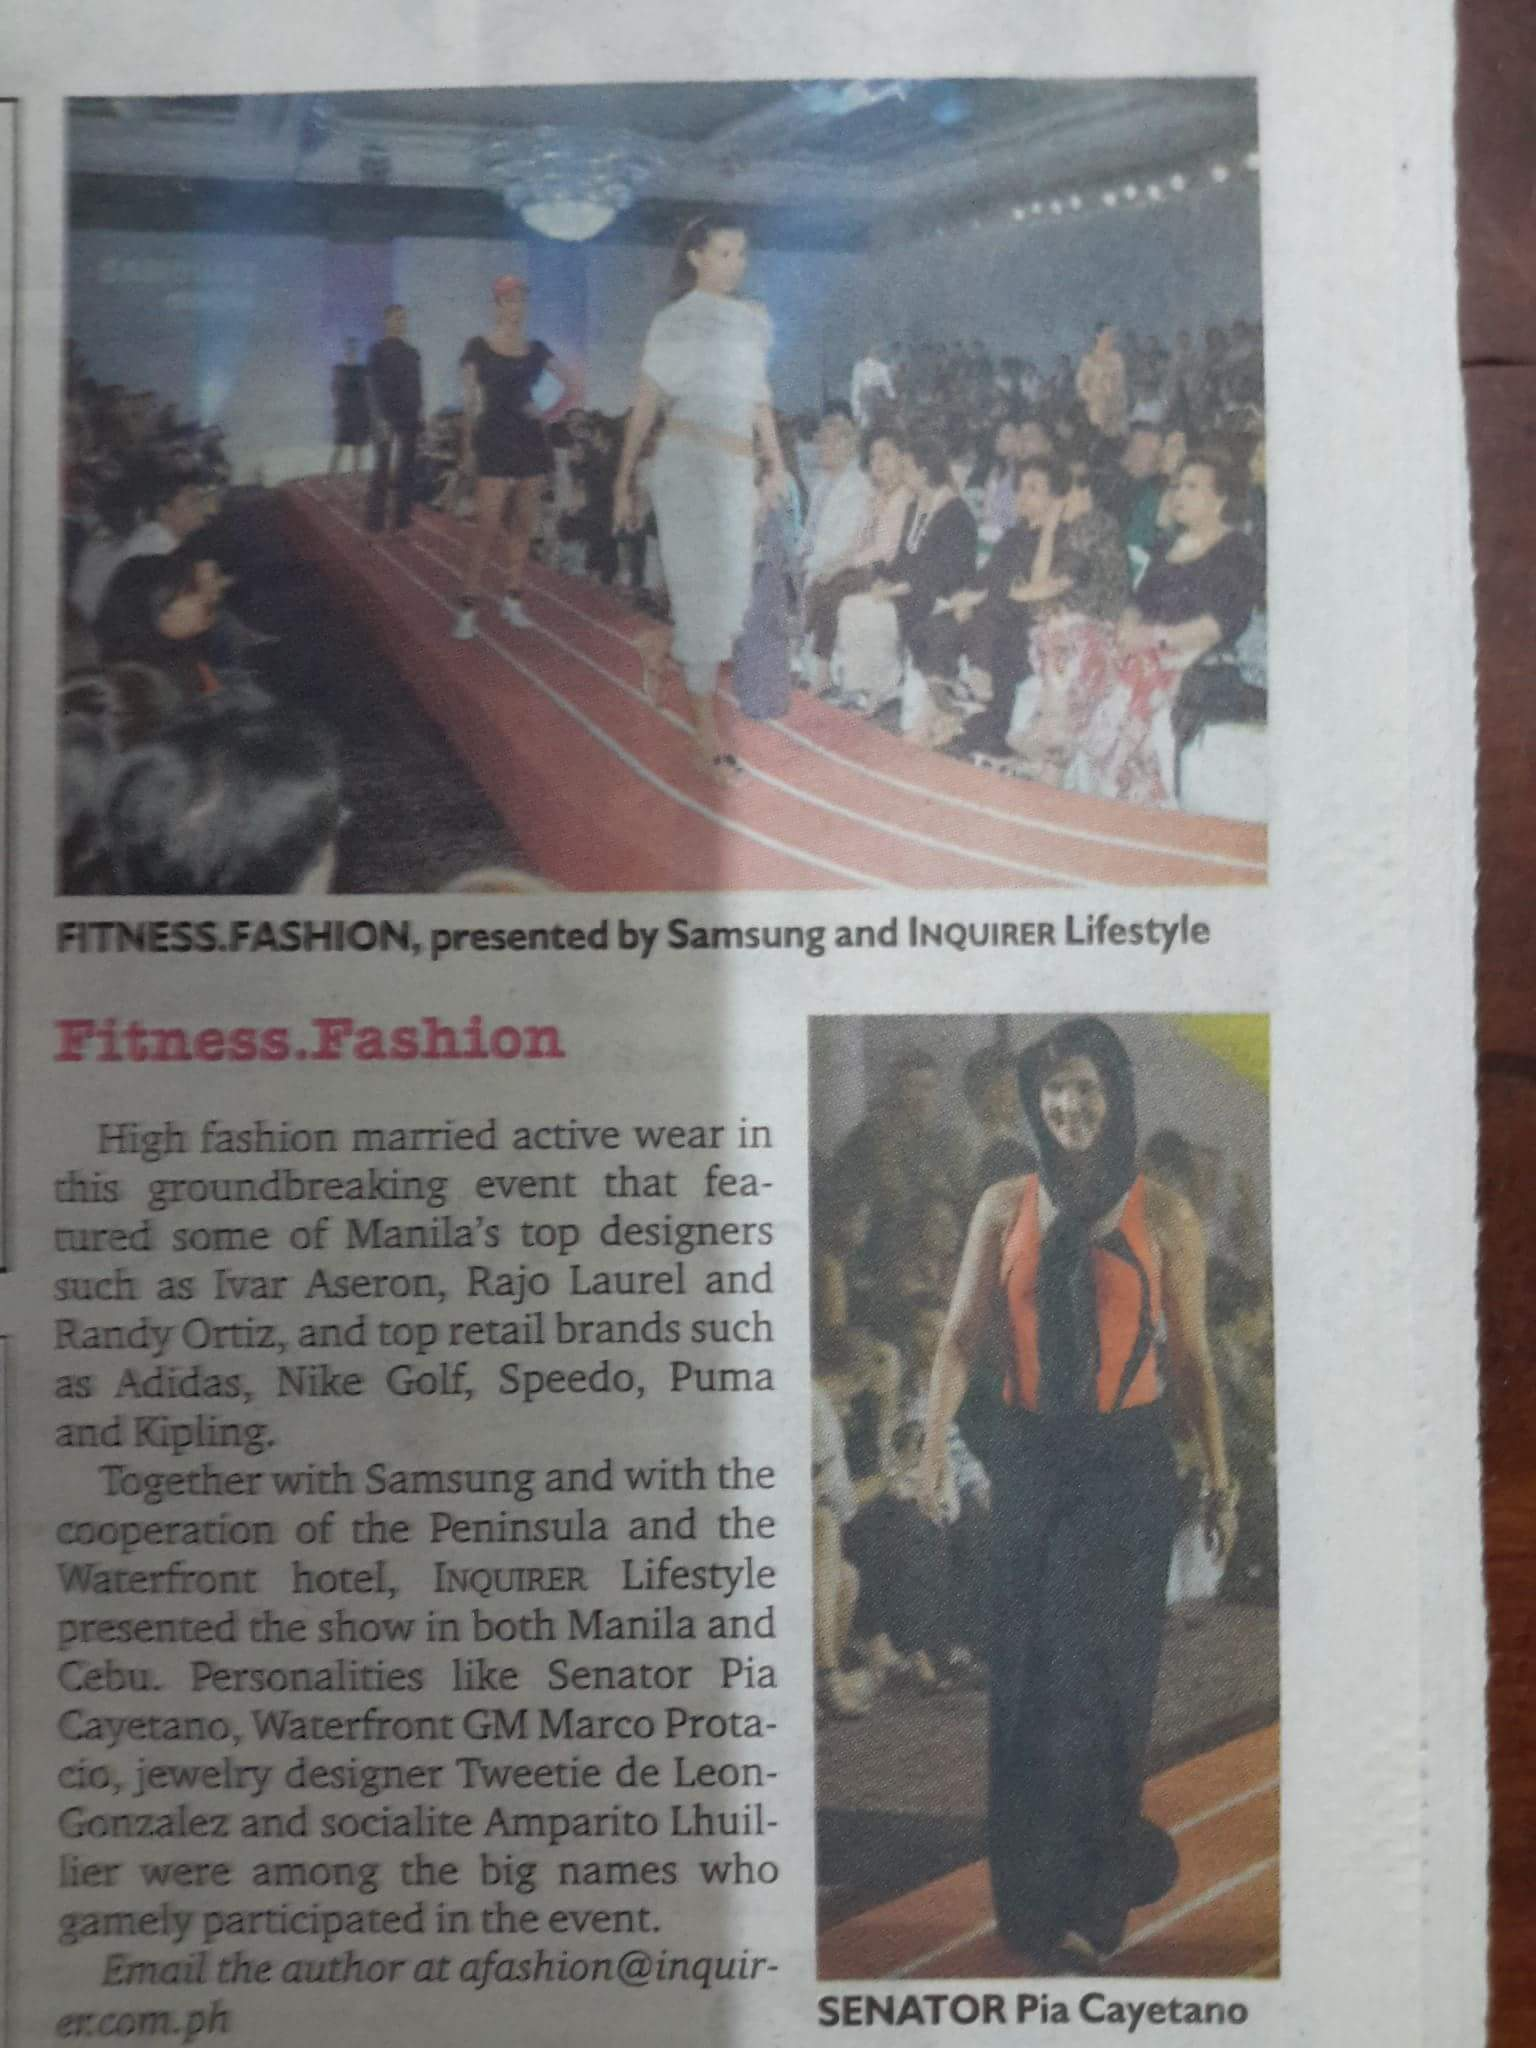 Phoemela Baranda Inquirer Lifestyle Series Fitness Fashion With Samsung